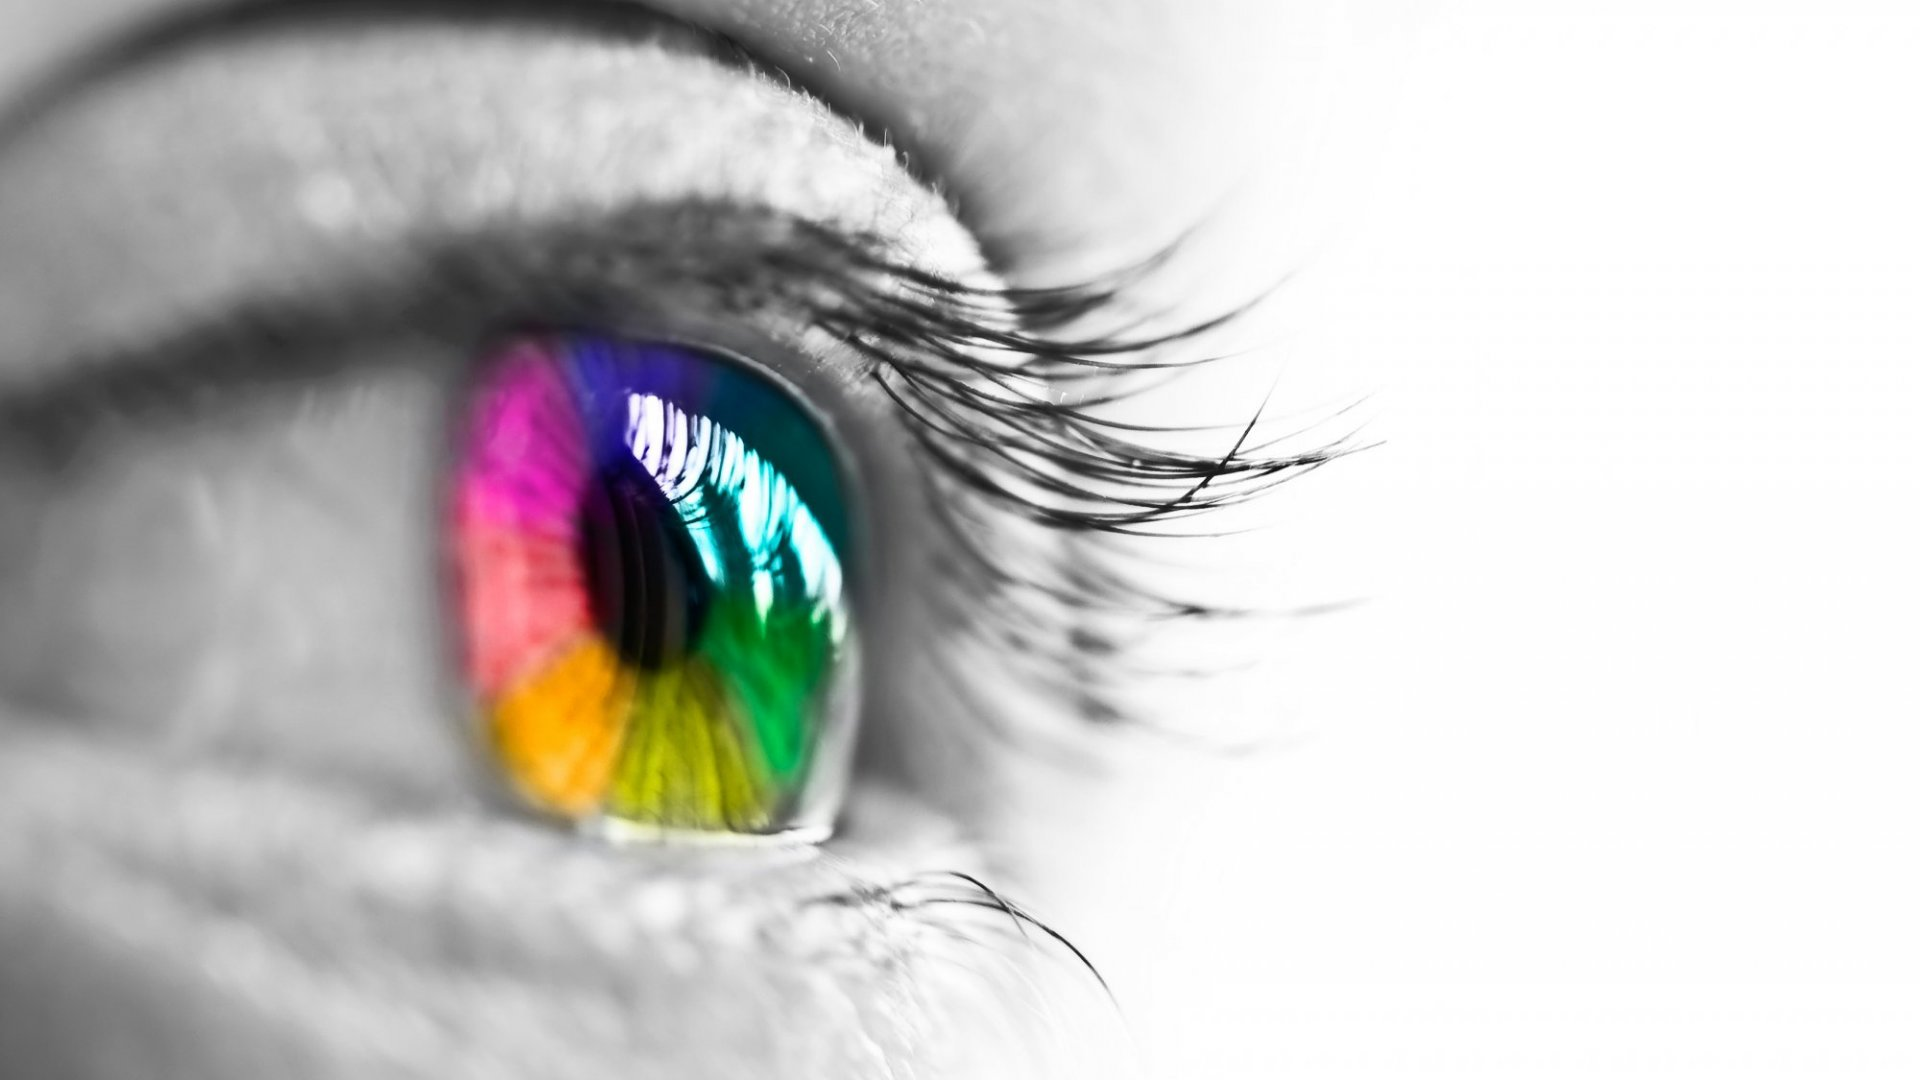 Research Shows Color Is Critical in Consumer Purchasing Decisions